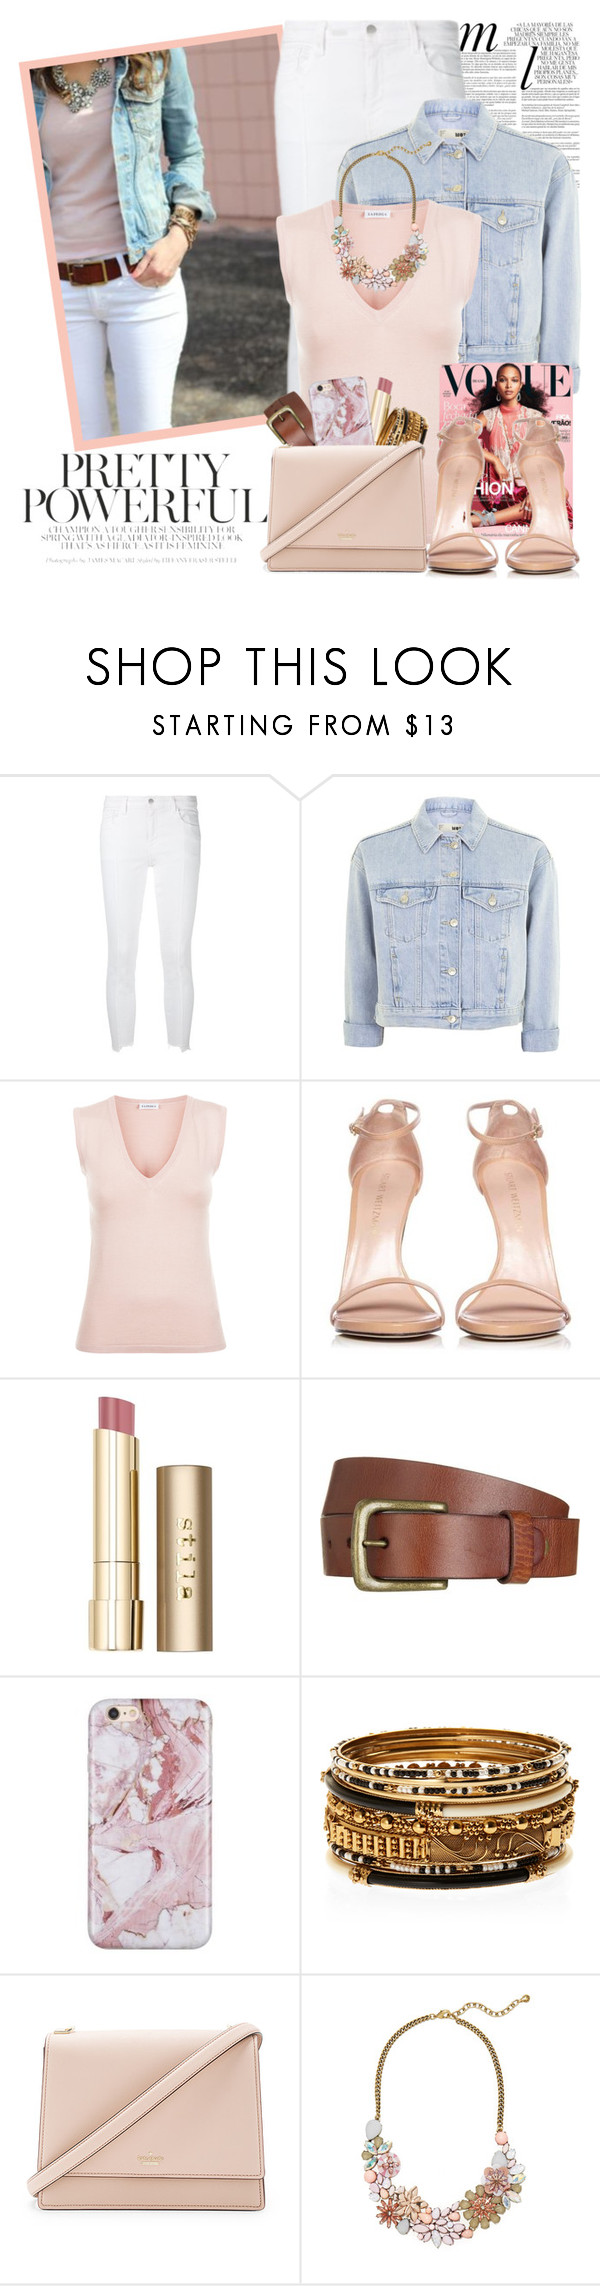 """Bright White: Summer Denim - Inspired"" by martinabb ❤ liked on Polyvore featuring Whiteley, J Brand, Topshop, Stuart Weitzman, Stila, Will Leather Goods, Amrita Singh, Kate Spade and BaubleBar"